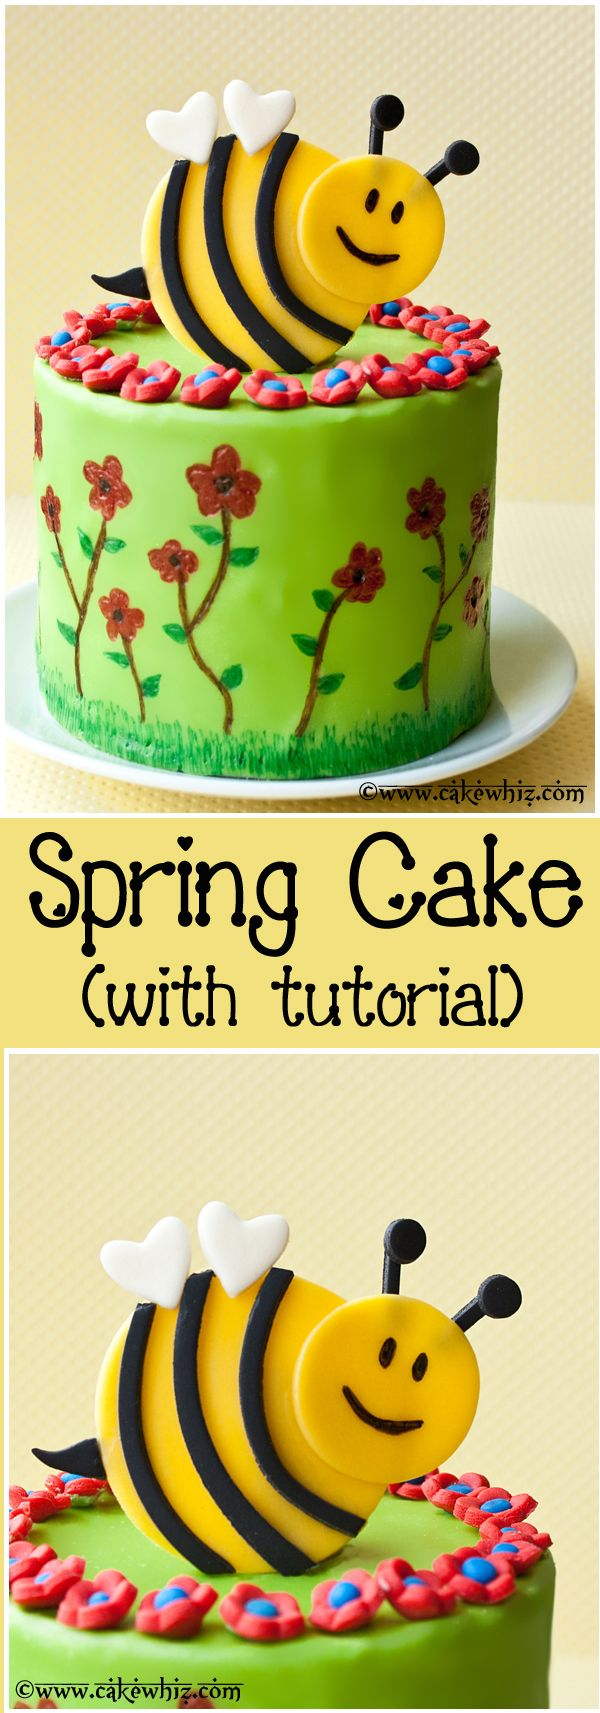 Spring themed cake with a bumblebee topper and flowers! So cute and great for parties! From cakewhiz.com